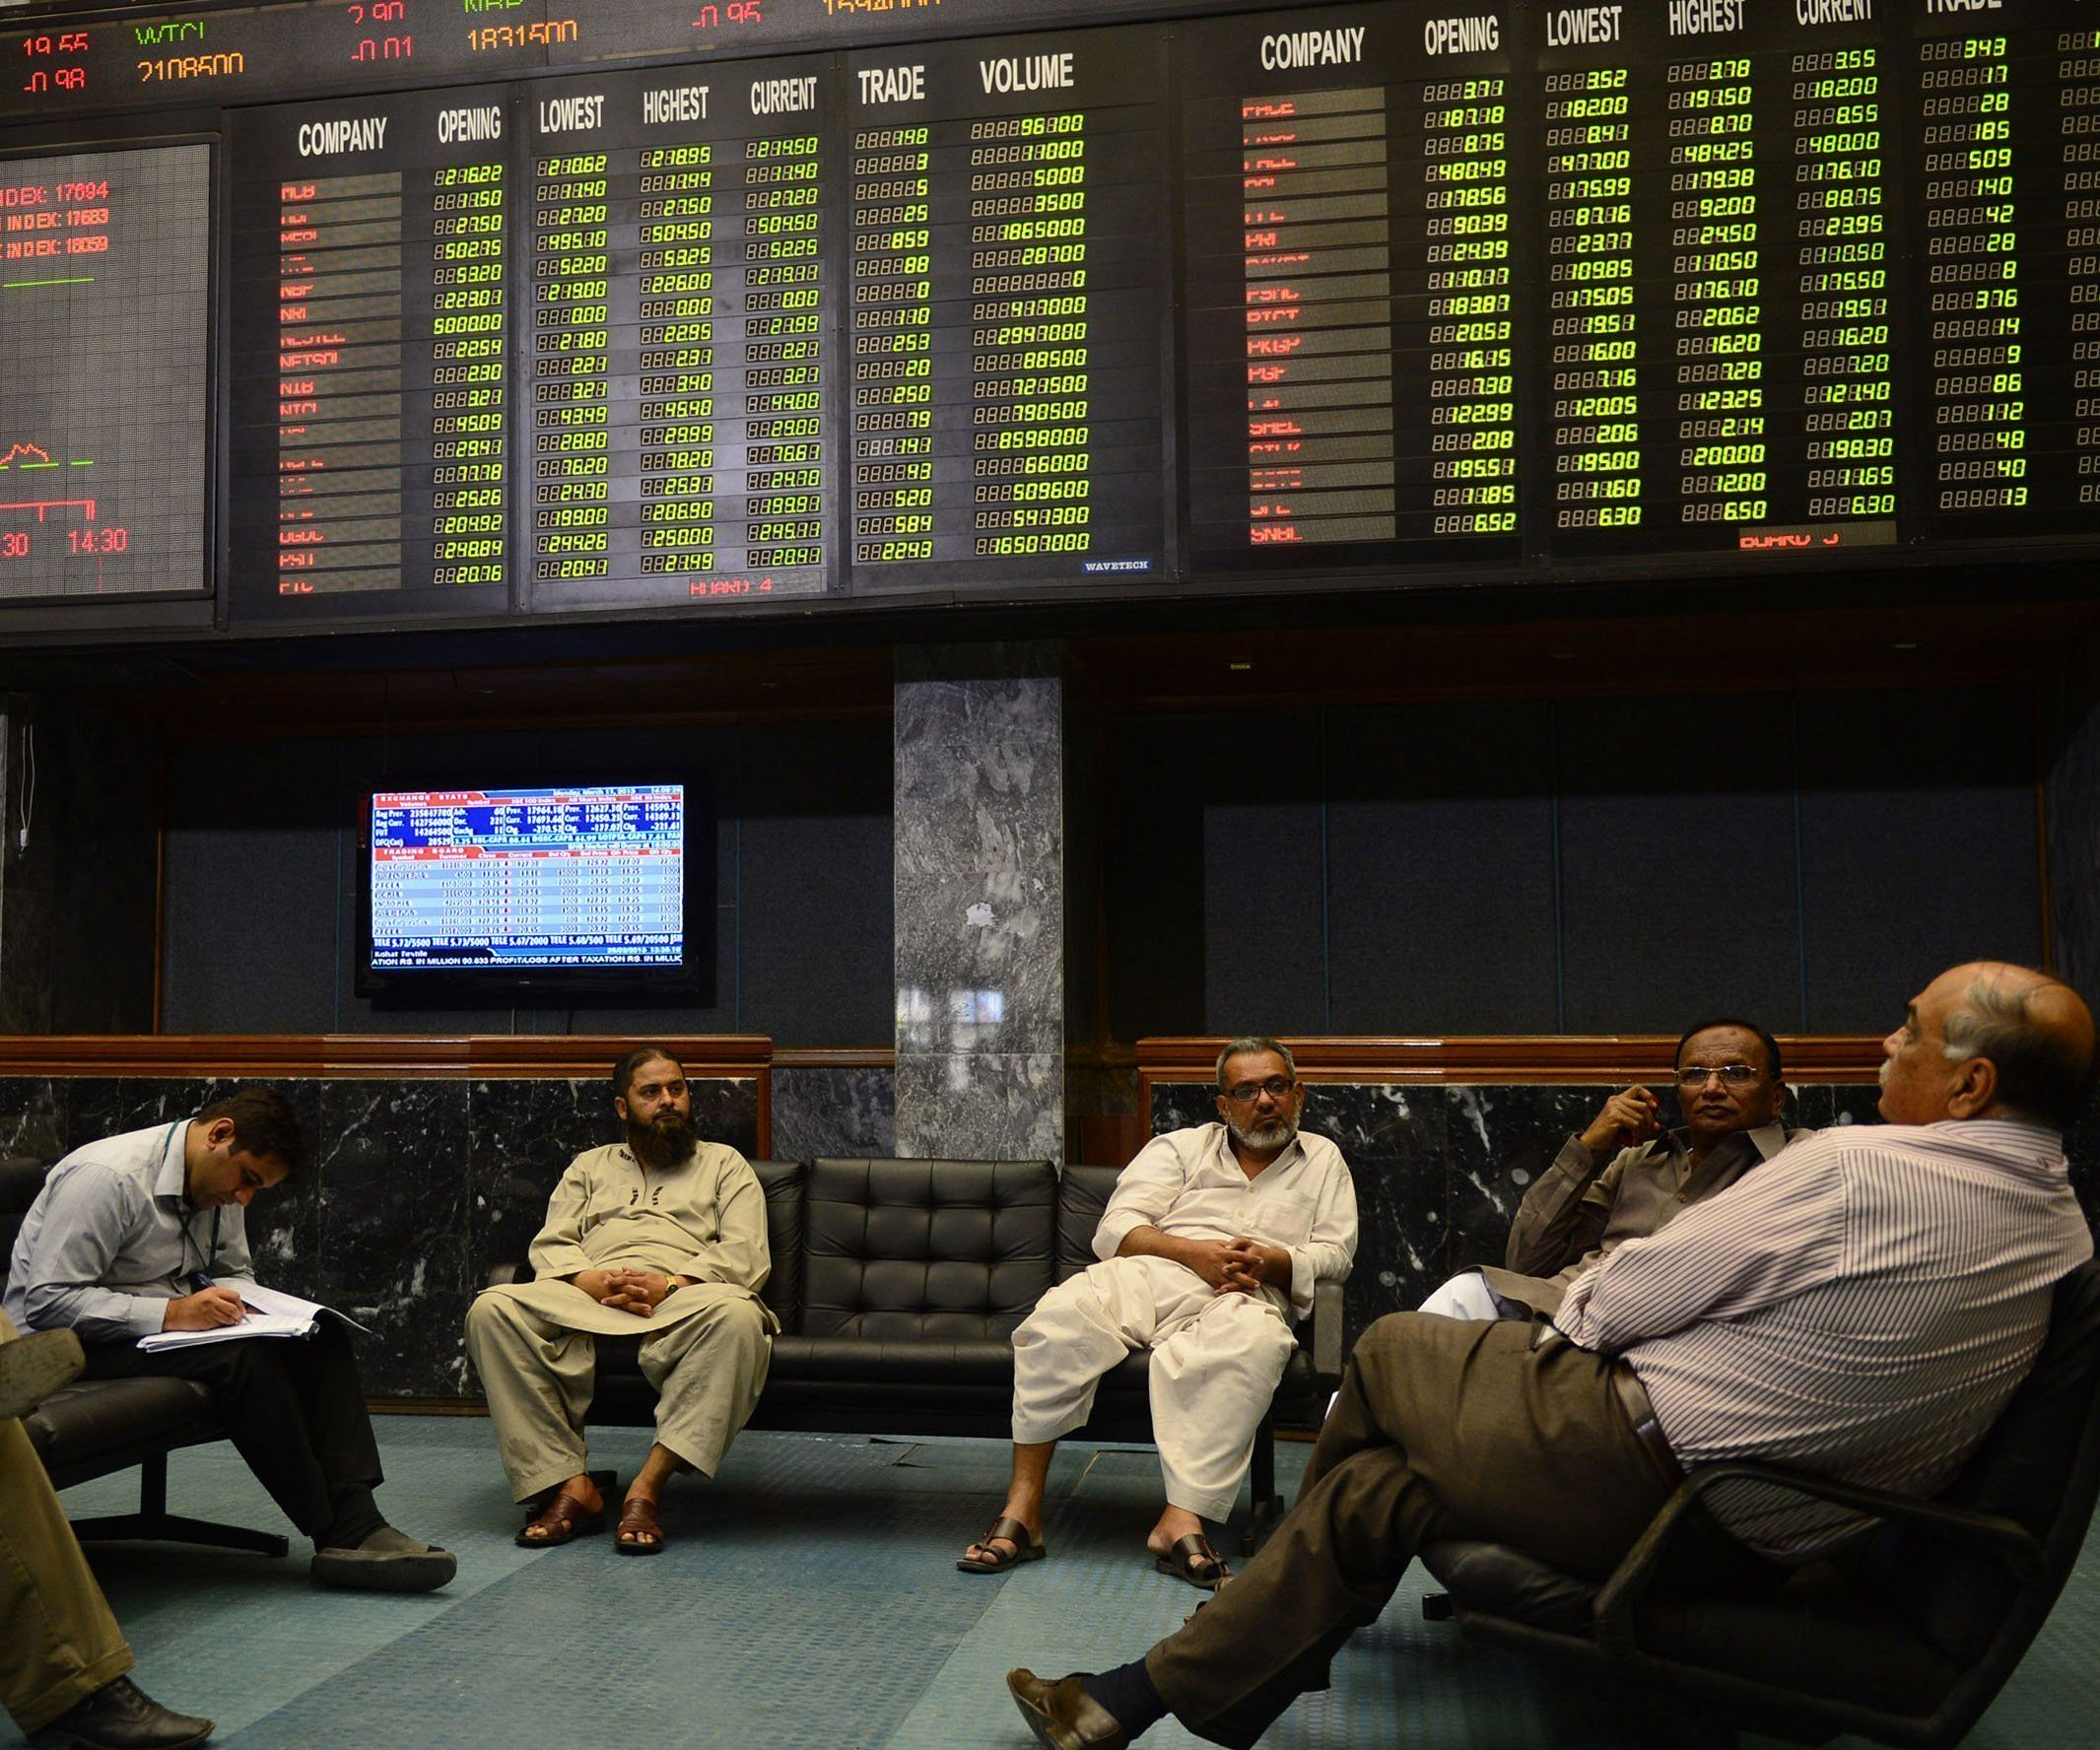 kse 100 index rises 238 82 points to settle at 32 553 39 photo afp